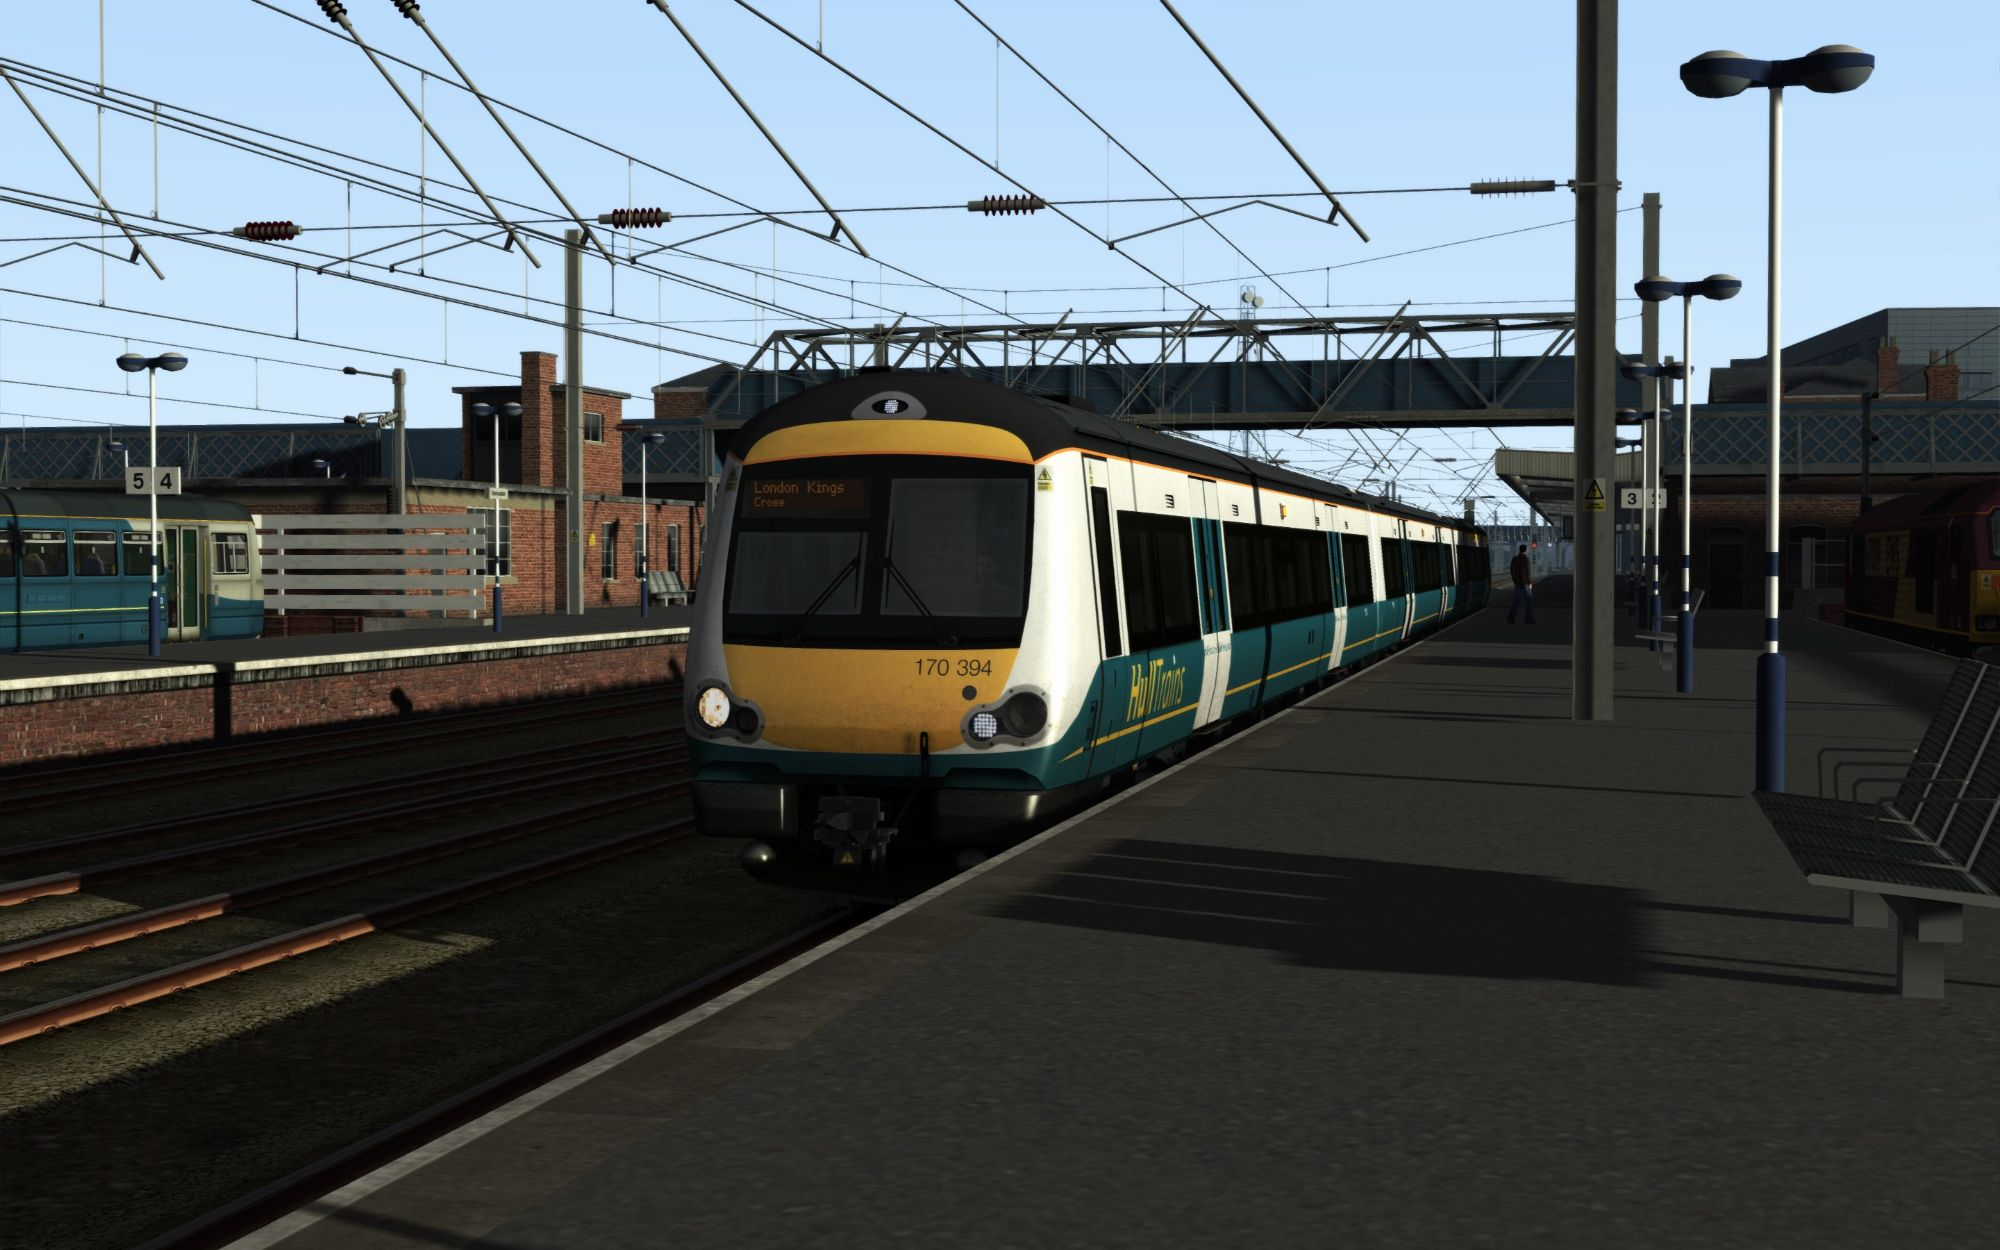 Image showing screenshot of the 1A91 - 0625 Hull to London Kings Cross scenario